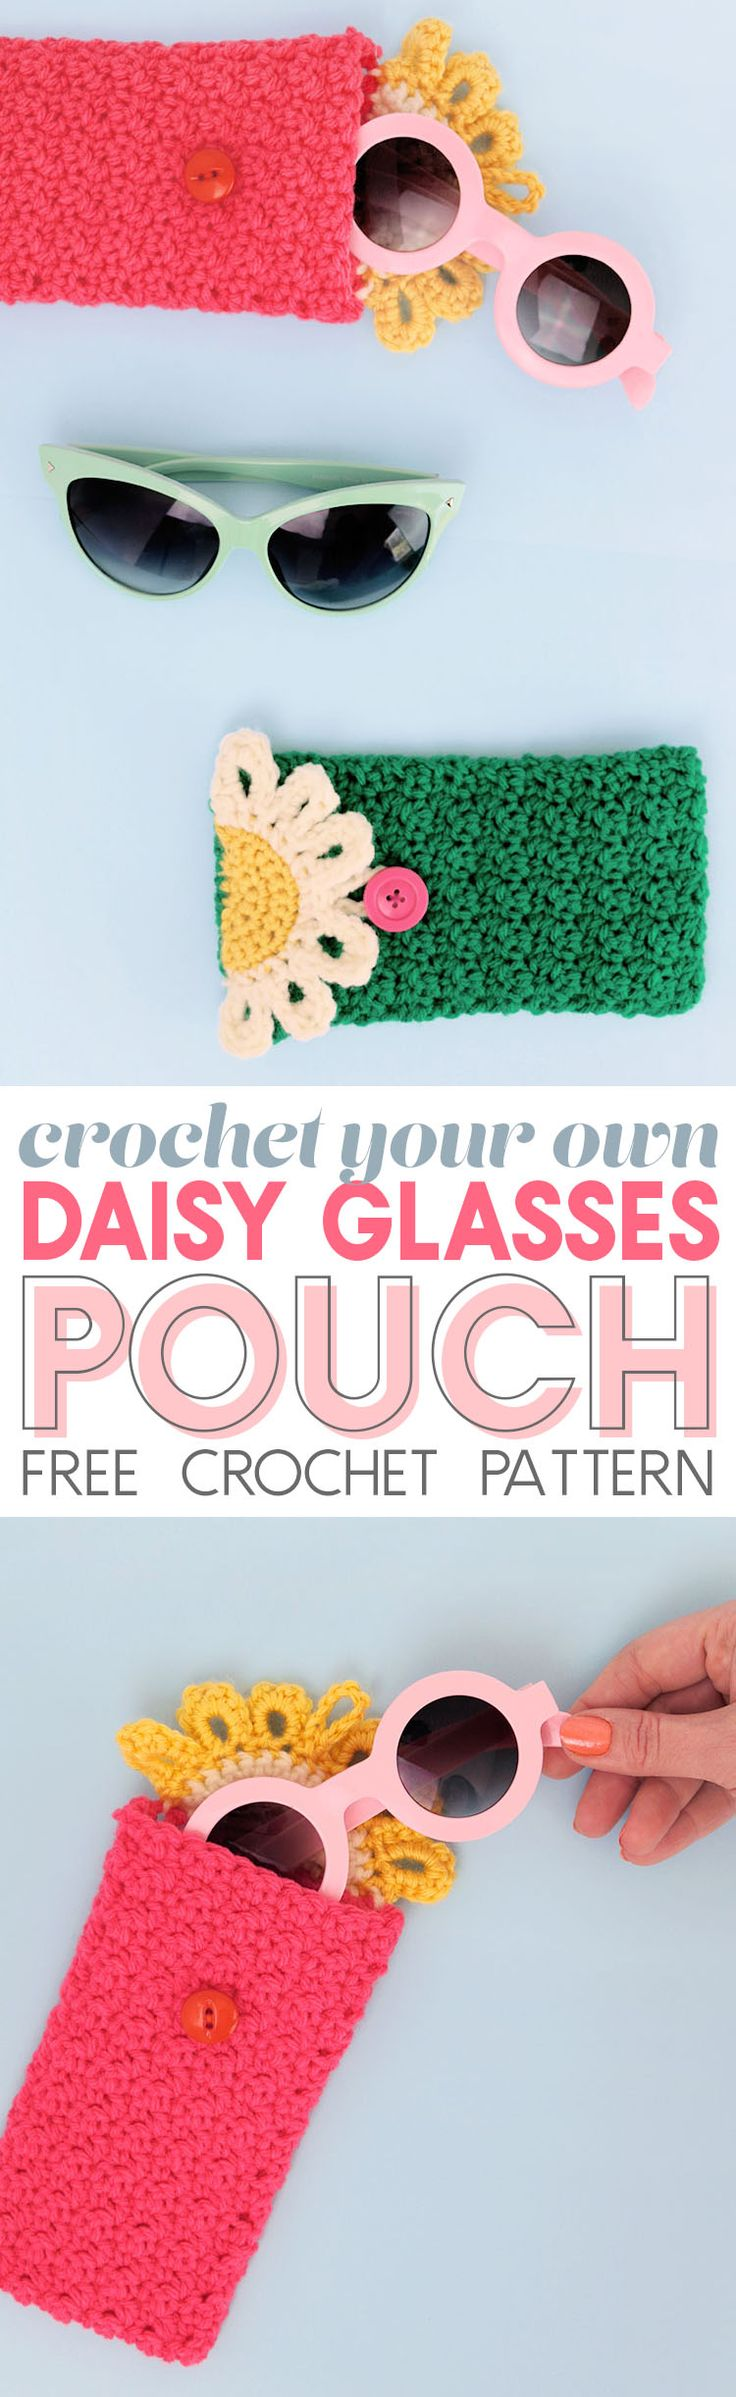 Happy Daisy Crochet Glasses Pouch - Free Crochet Pattern - keep your glasses or sunglasses safe in this cute floral case